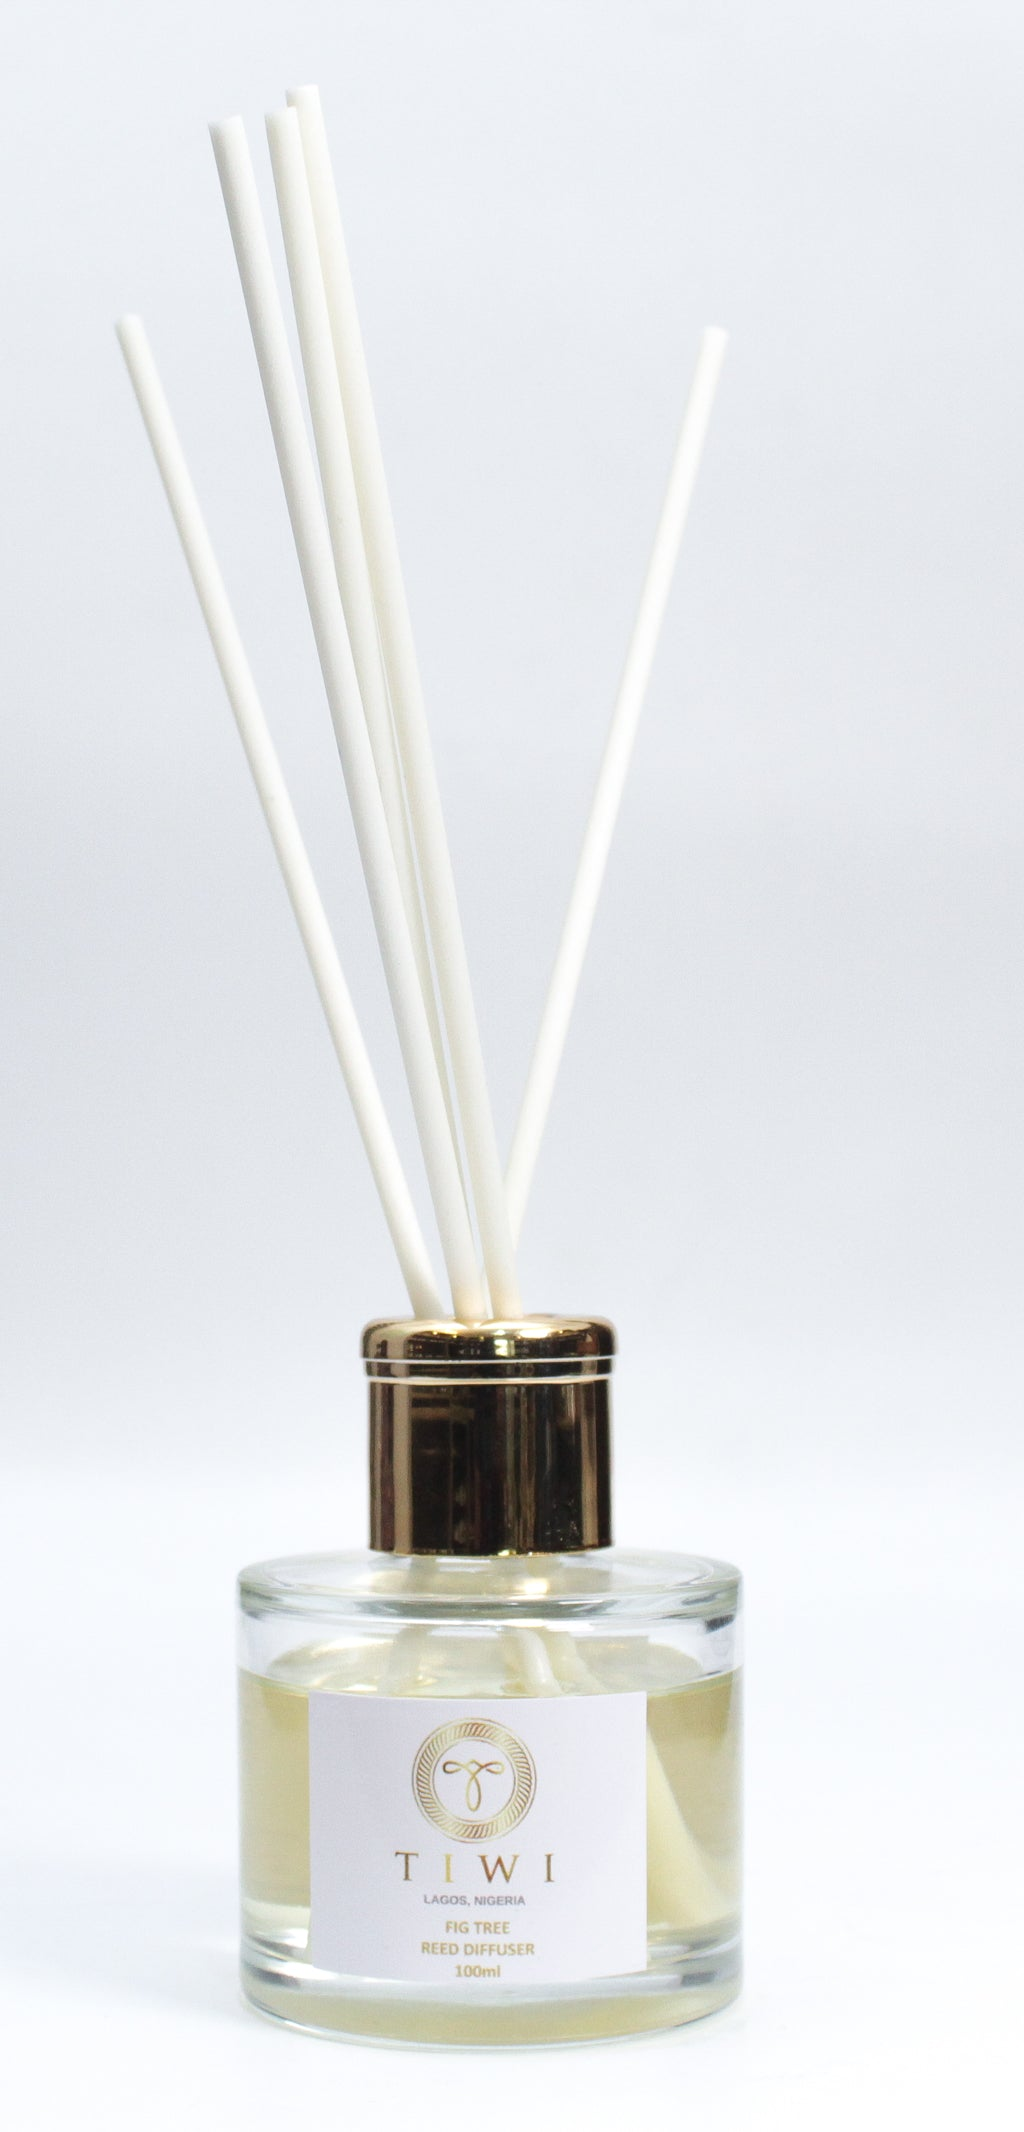 TIWI Fig Tree - A Reed Diffuser